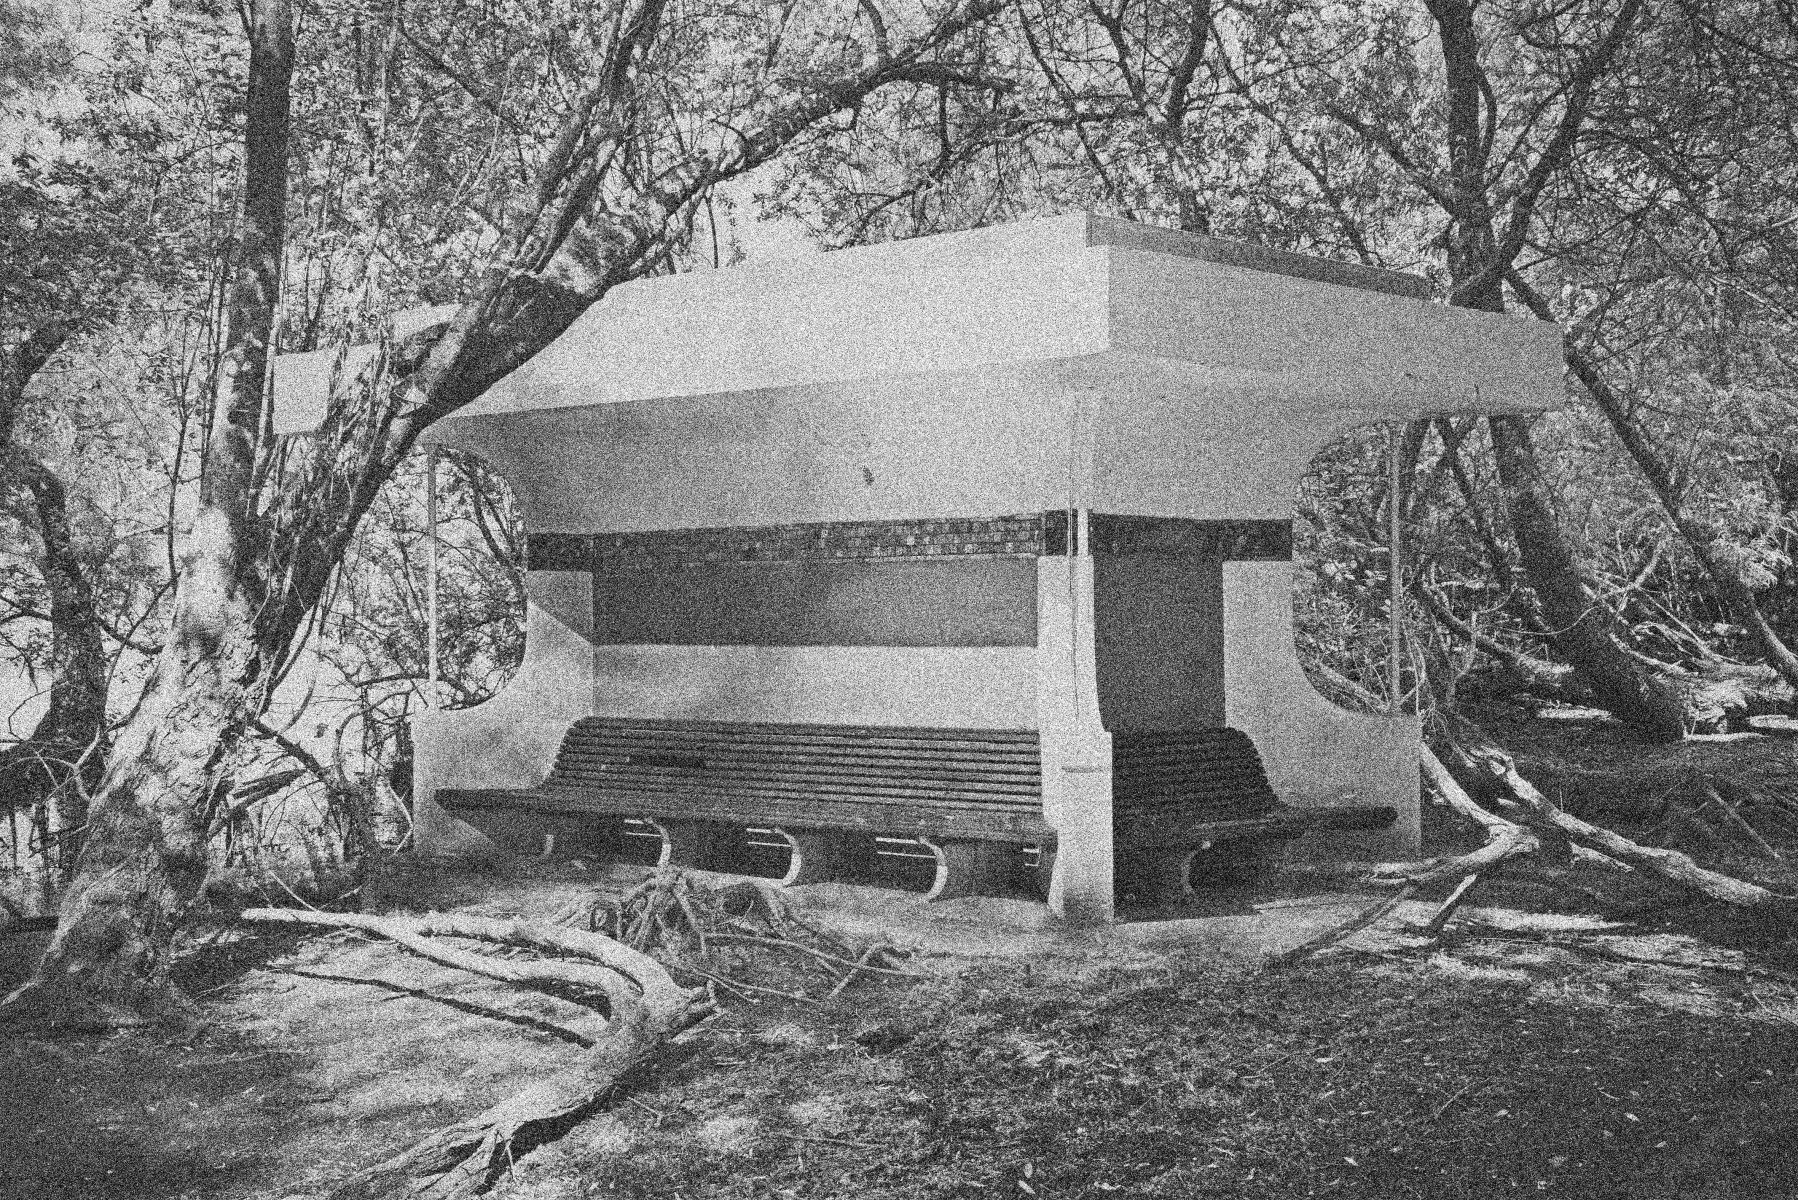 Pavilion Shelter of the Furnace Workers Darwell - Photolanguage (Nigel Green & Robin Wilson)